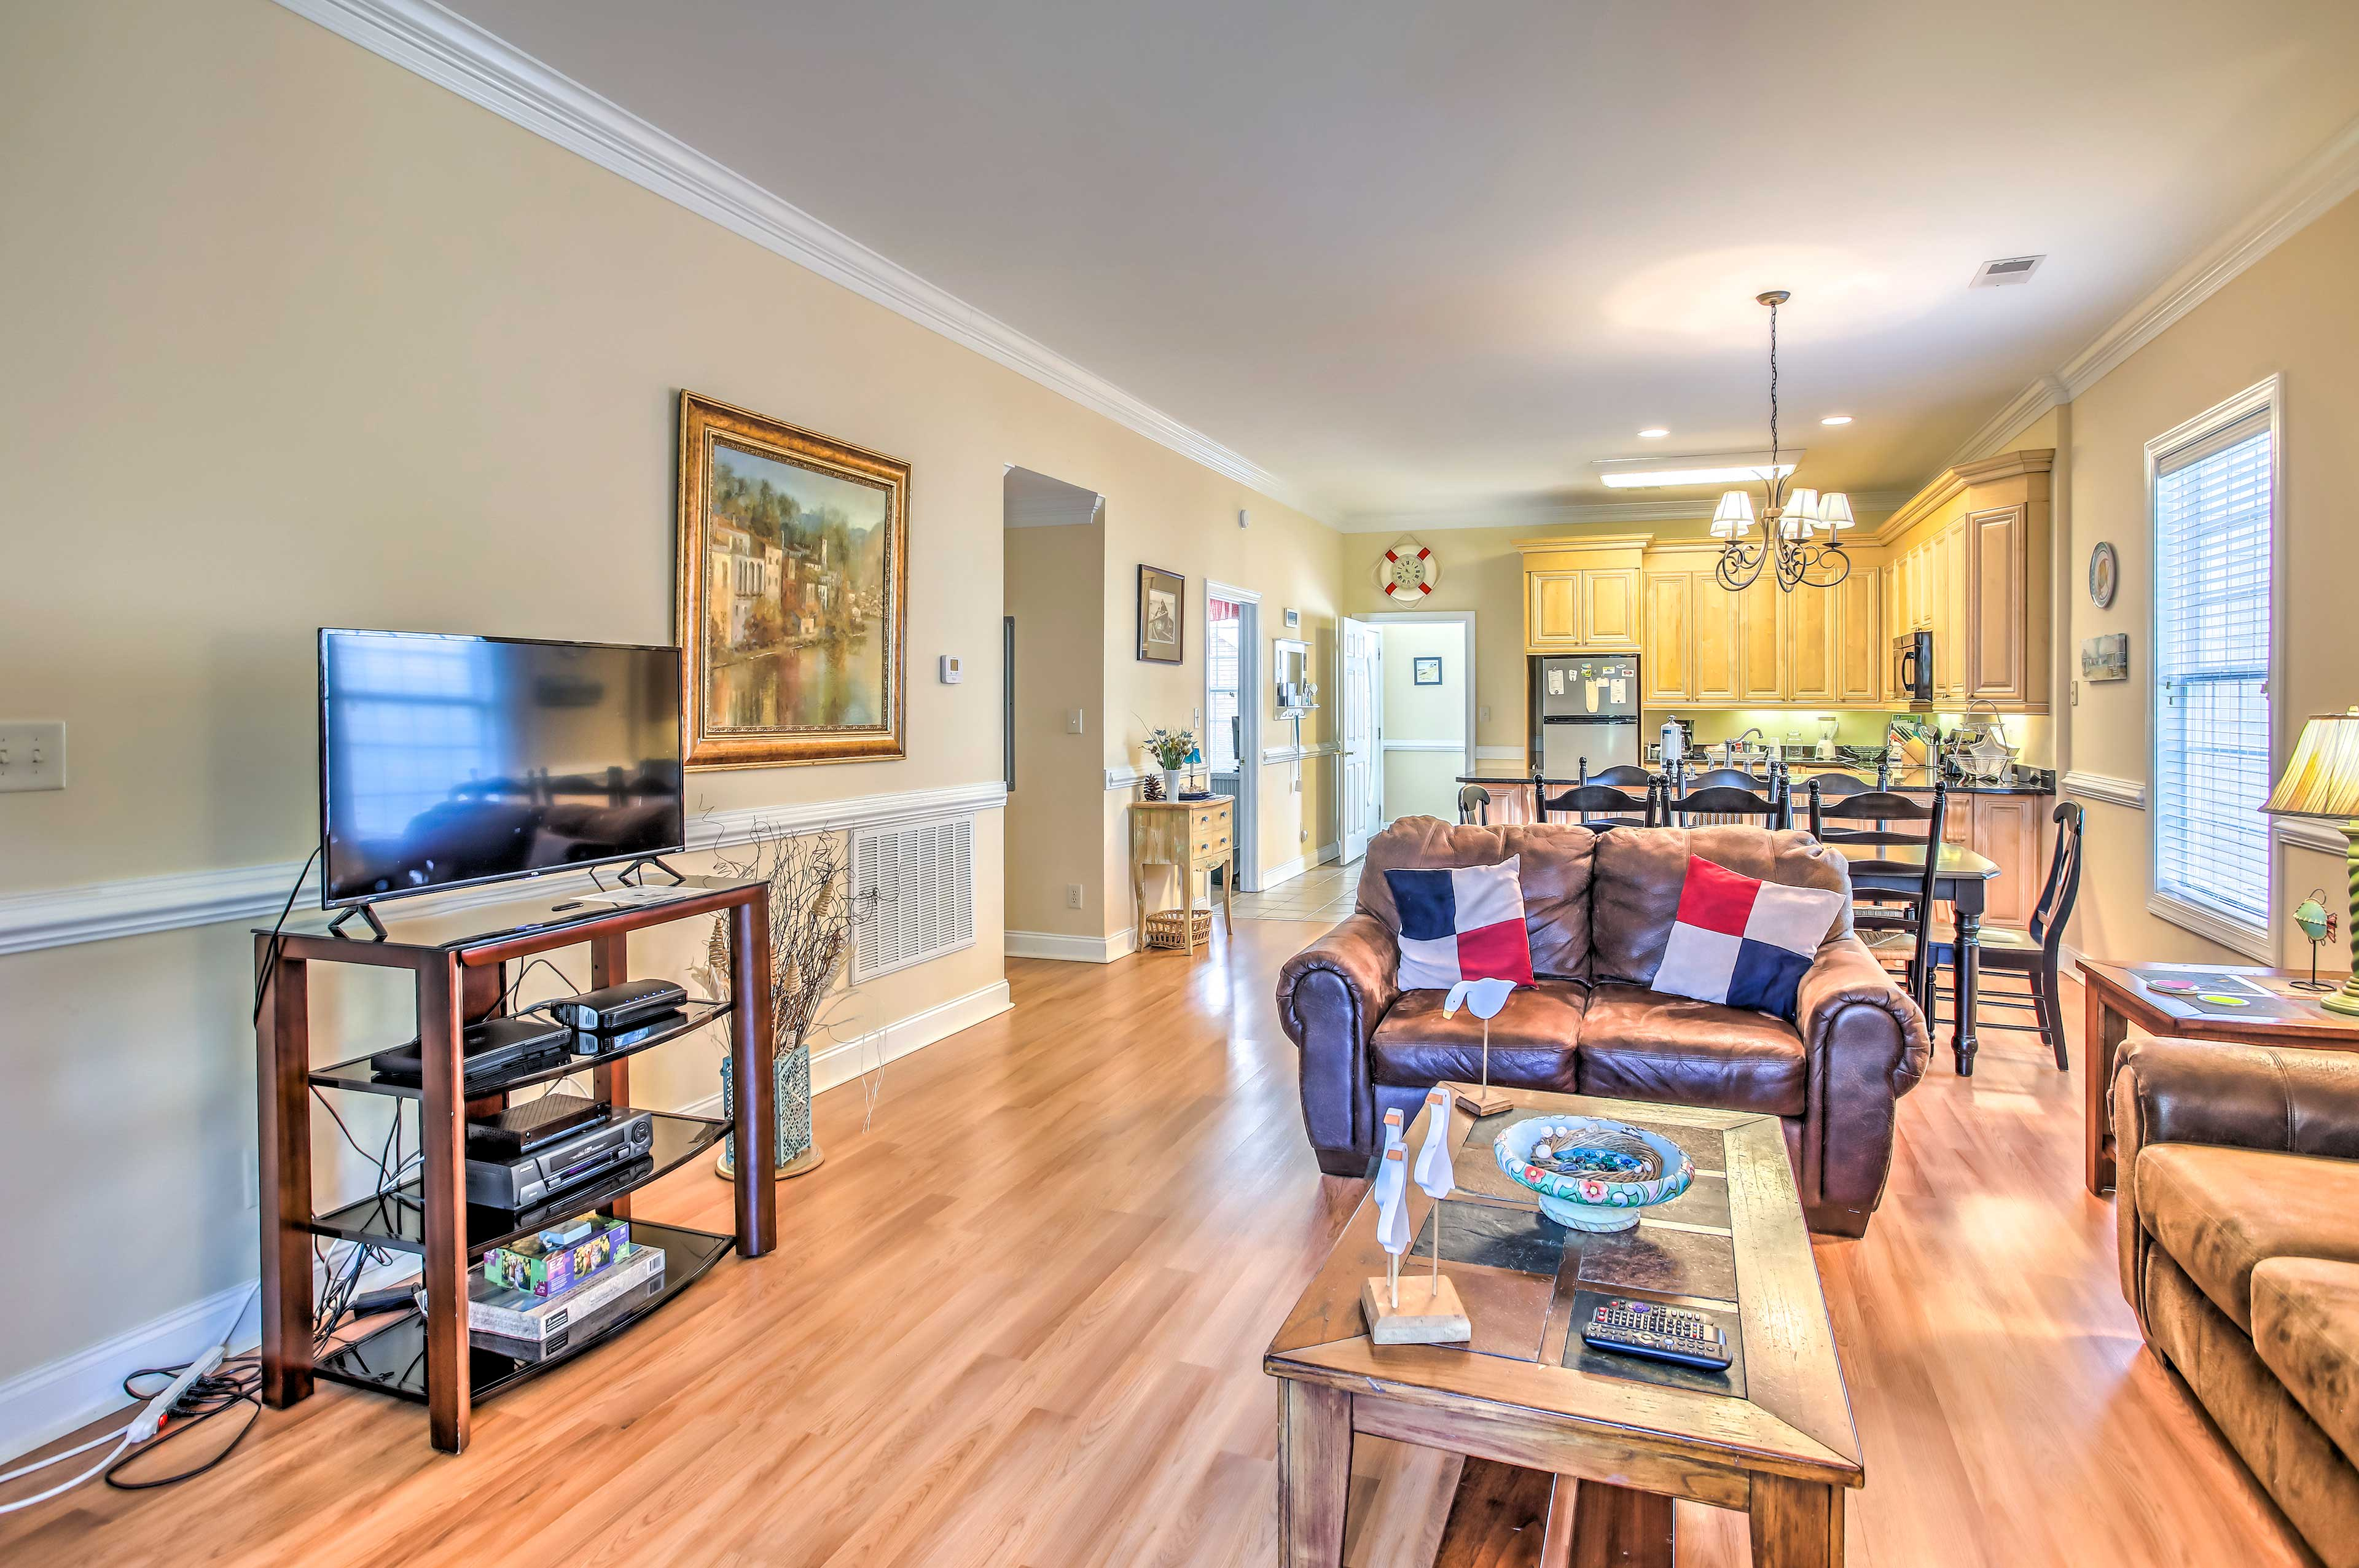 Hardwood floors and comfy furniture invites you into the space.